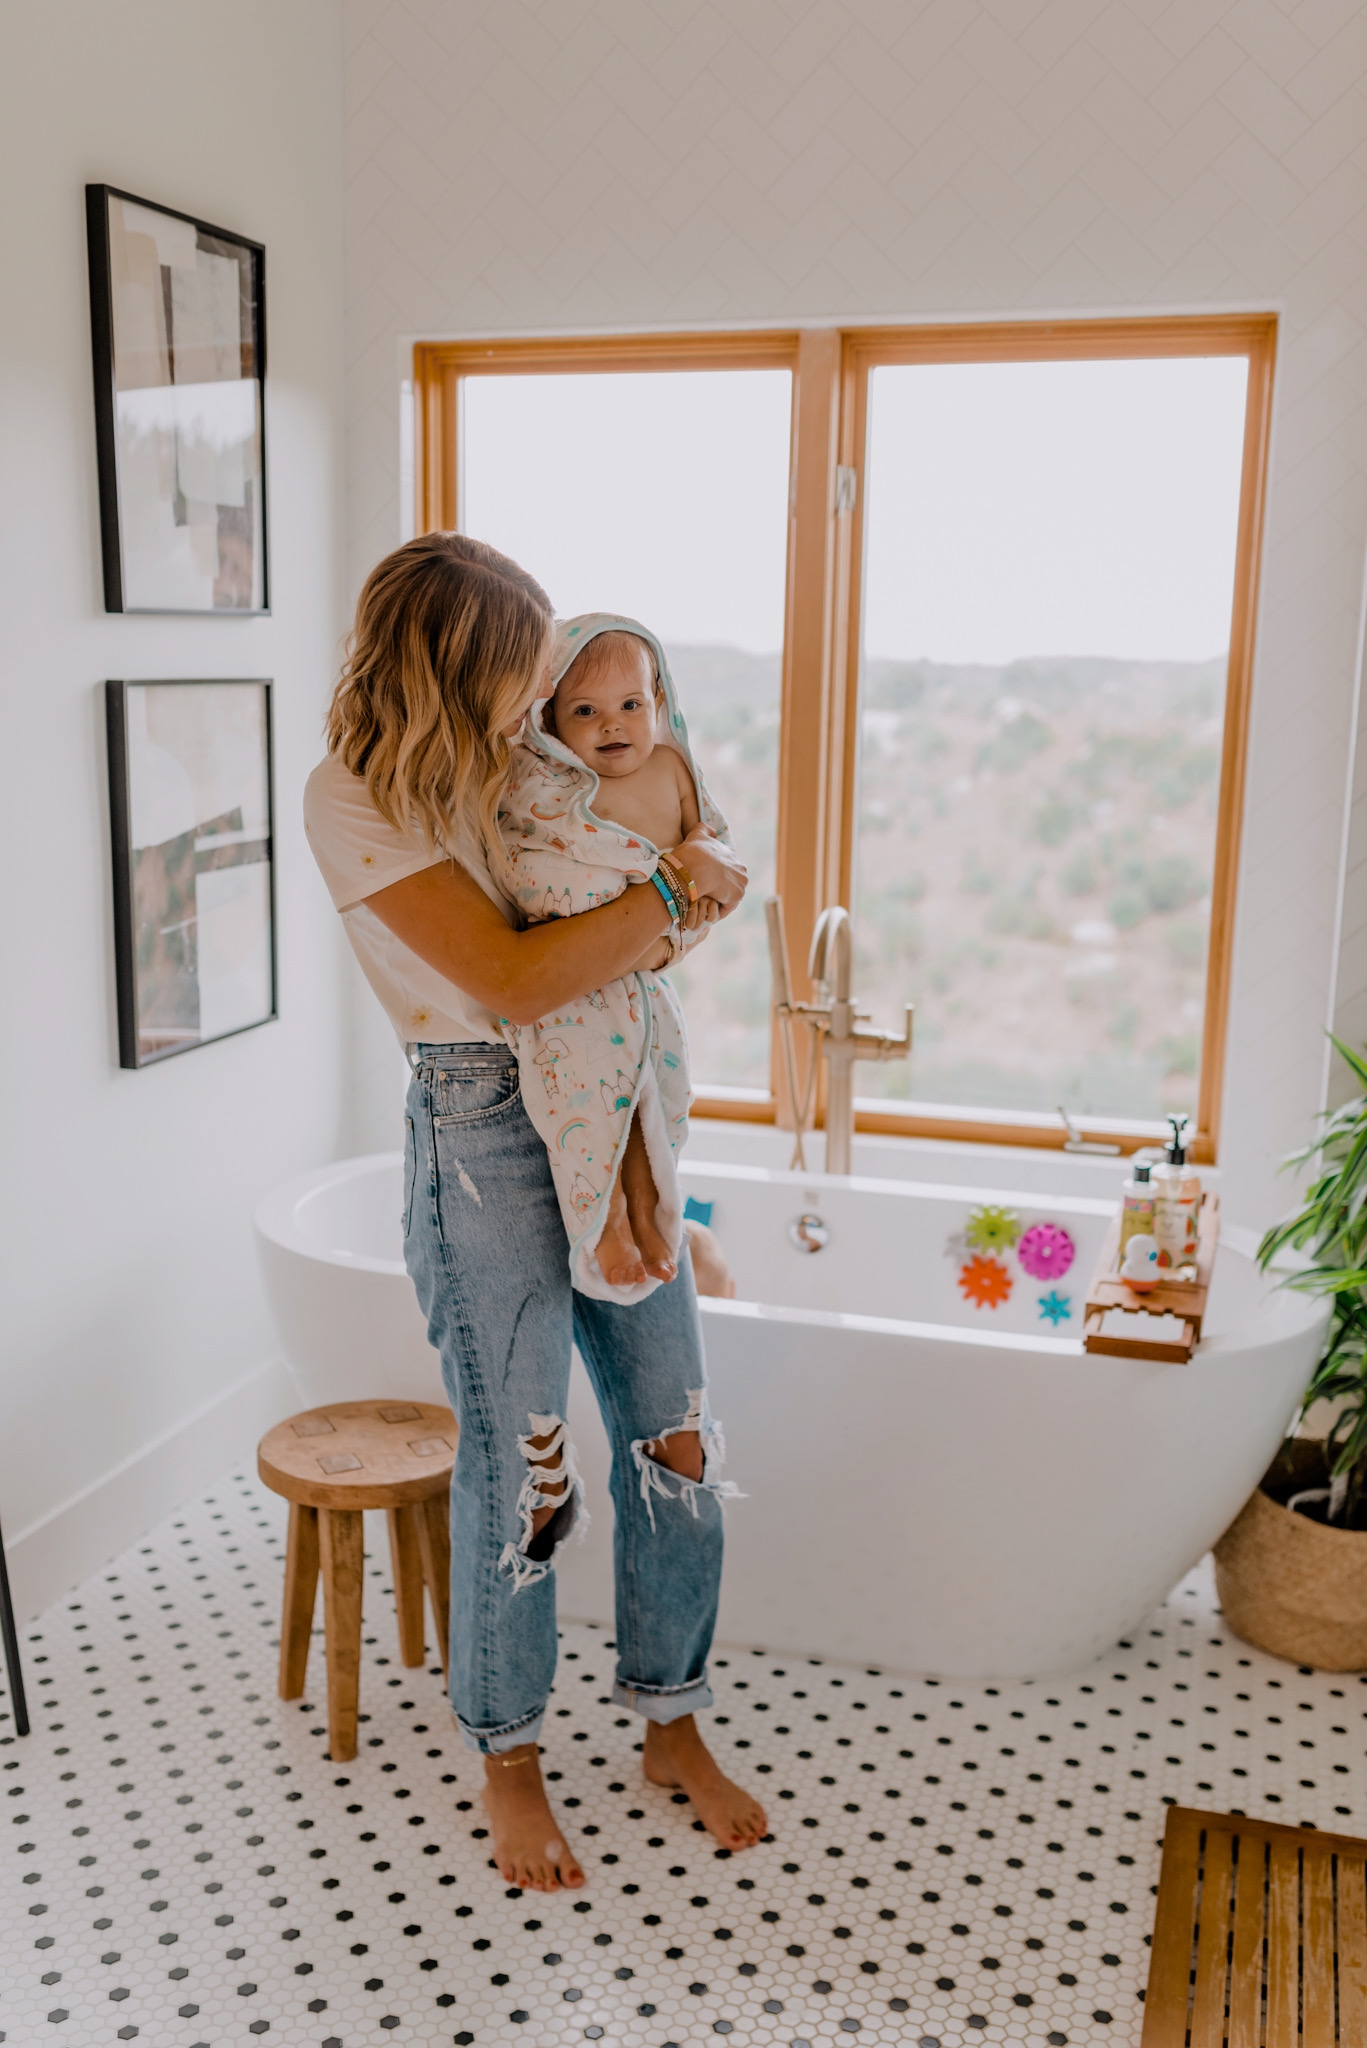 Baby Bath Toys by popular San Diego motherhood blog, Navy Grace: image of a mom holding her baby girl and wrapping her in a towel while she stands next to her her young son who's in the tub taking a bubble bath while playing with various amazon bath toys.